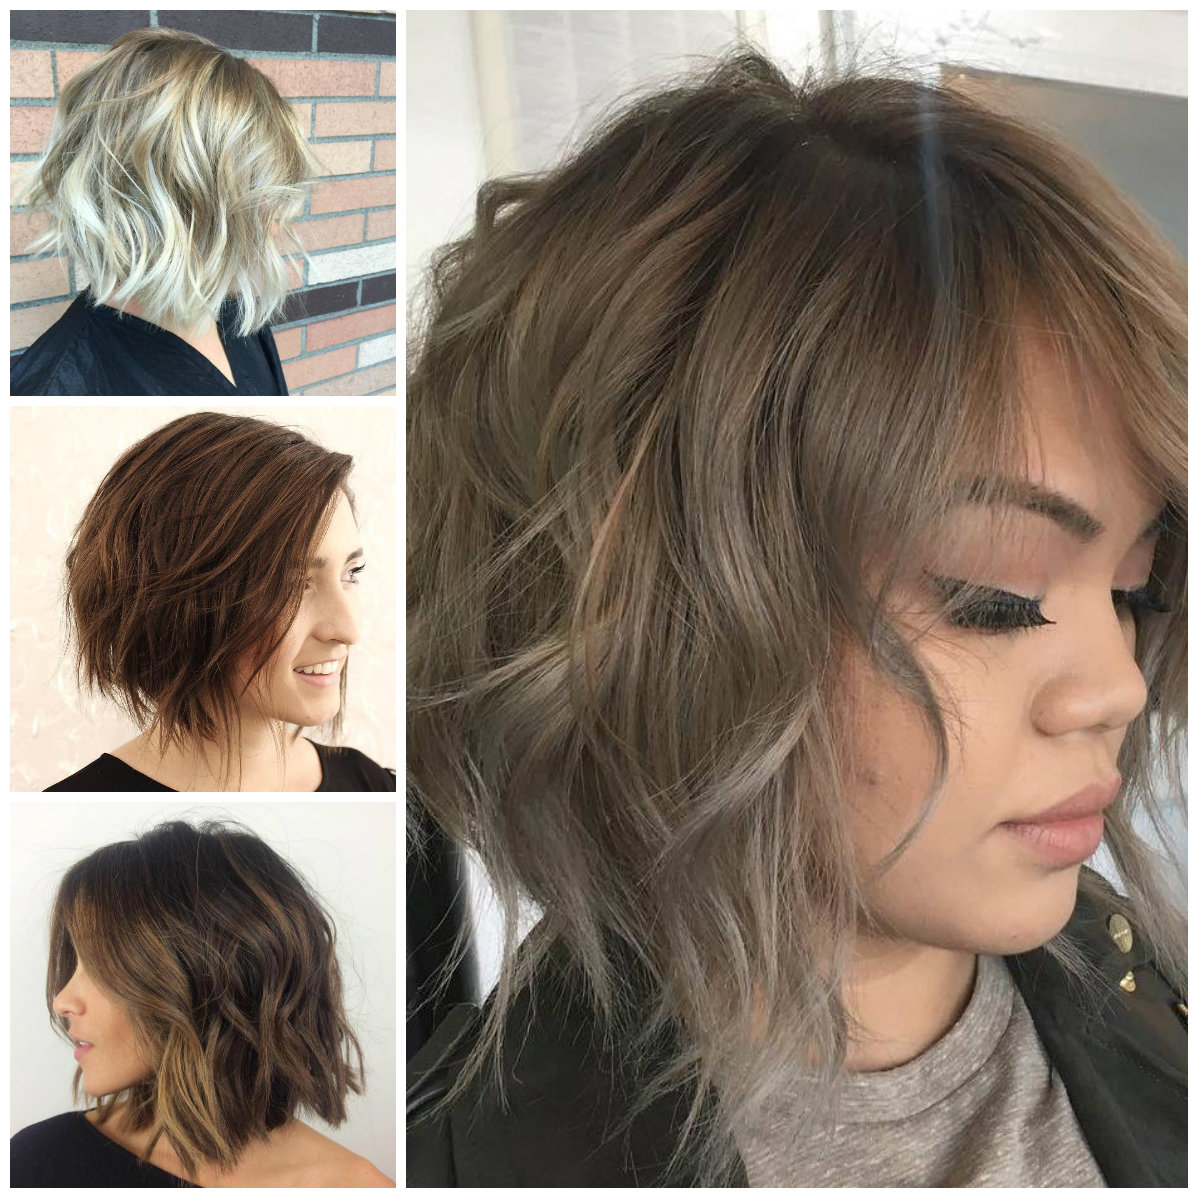 Casual Short Messy Hairstyles for Females